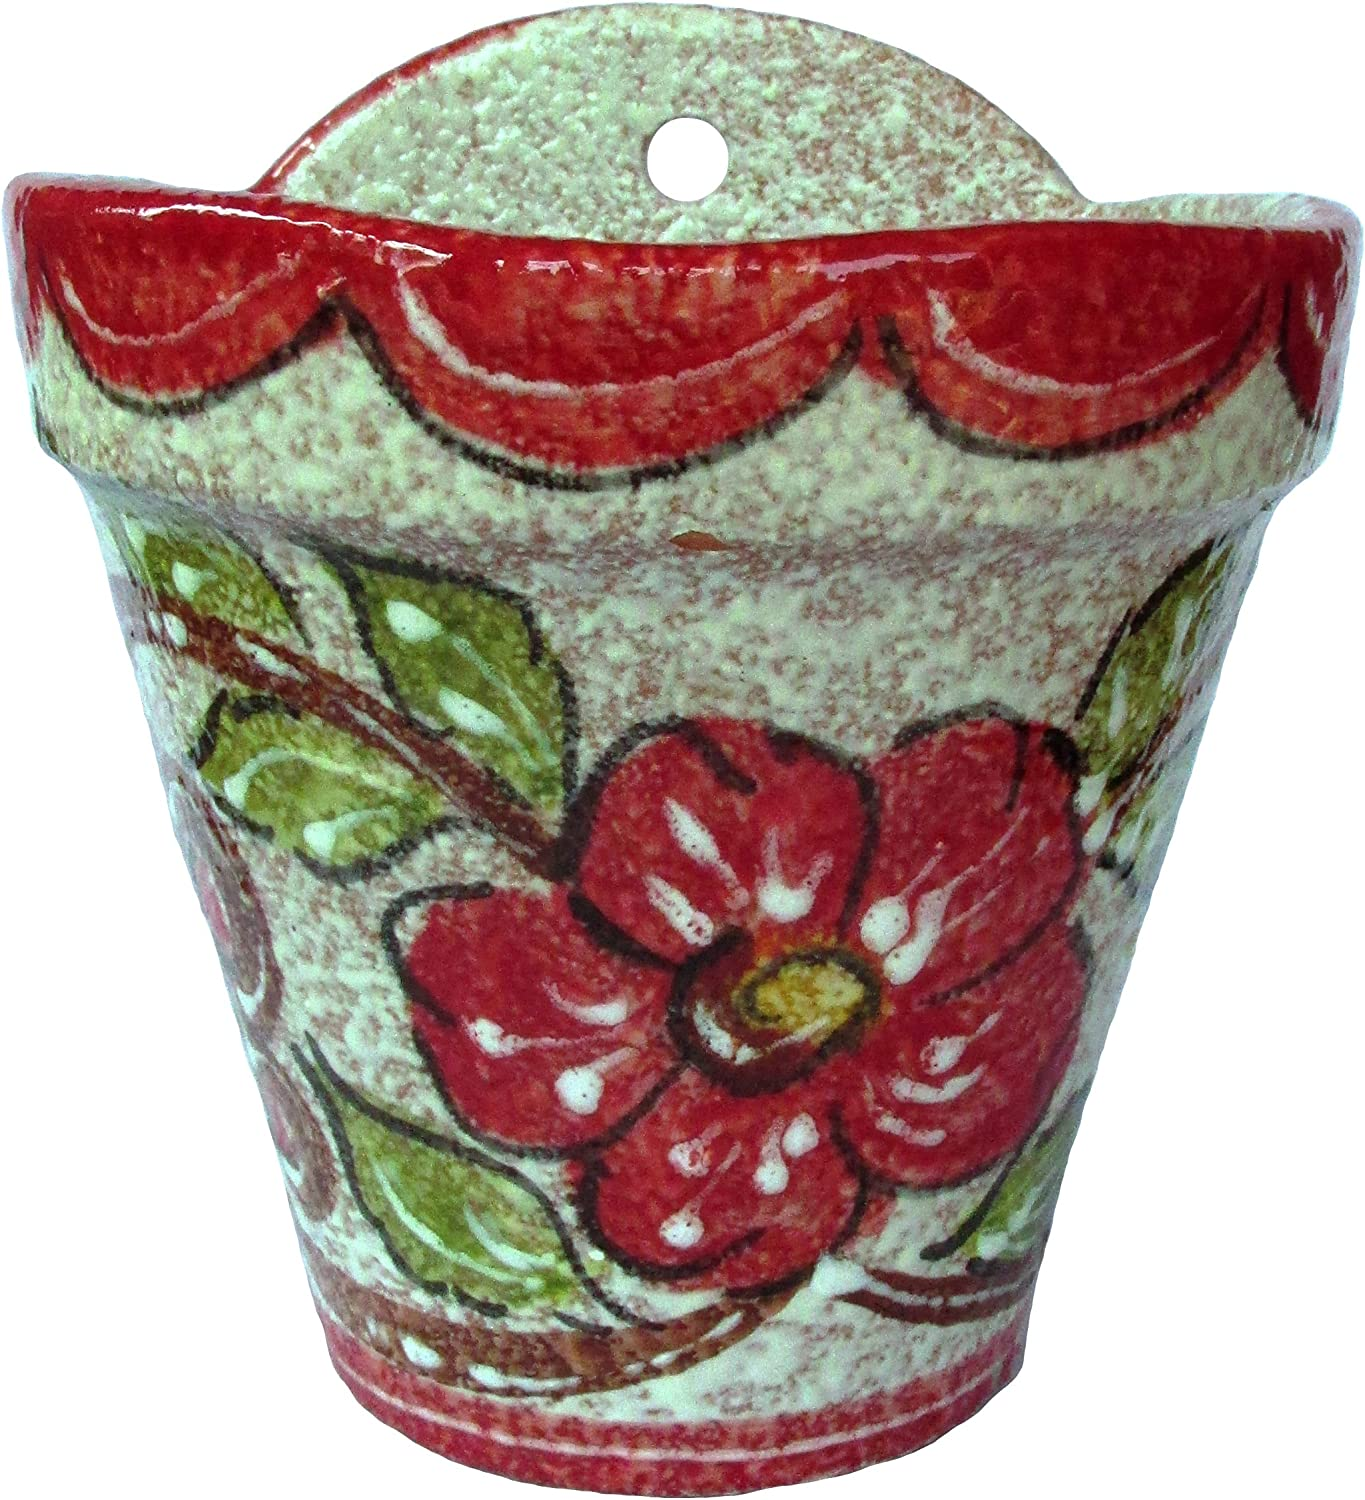 Cactus Canyon Ceramics Spanish Hand-Painted Wall Flower Pot, Red Design